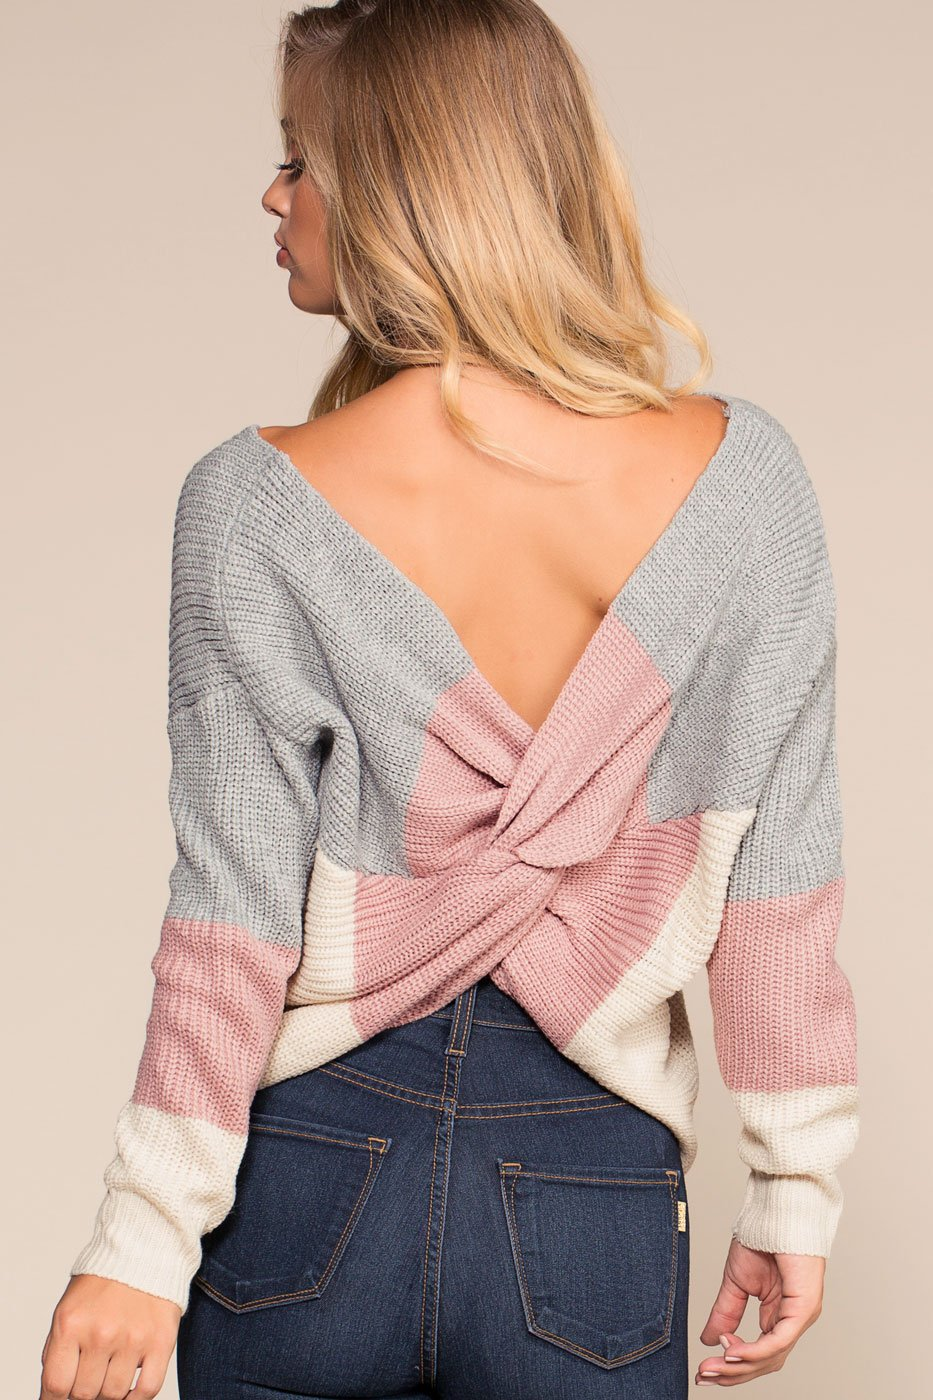 e67d7b7d74 Women s-Backless-Sweater-Twist Back-V Neck-Knitted-Pullover-Sexy